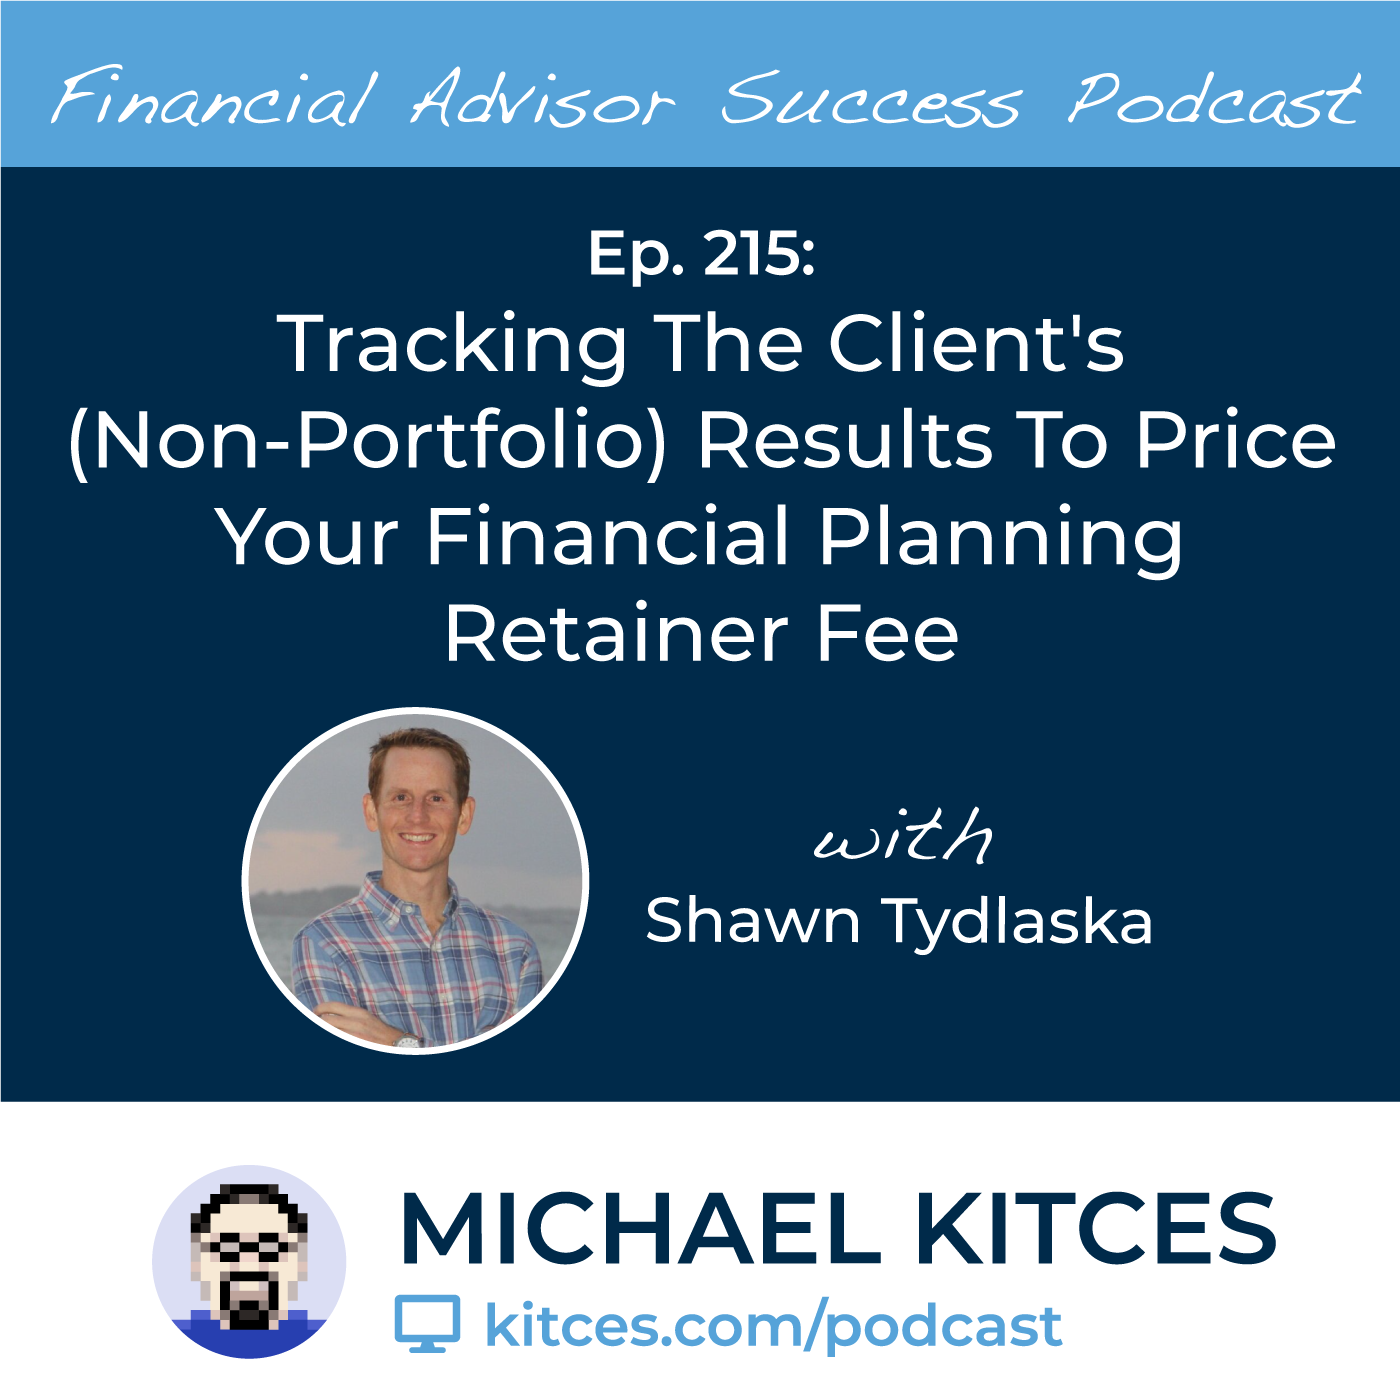 Ep 215: Tracking The Client's (Non-Portfolio) Results To Price Your Financial Planning Retainer Fee with Shawn Tydlaska